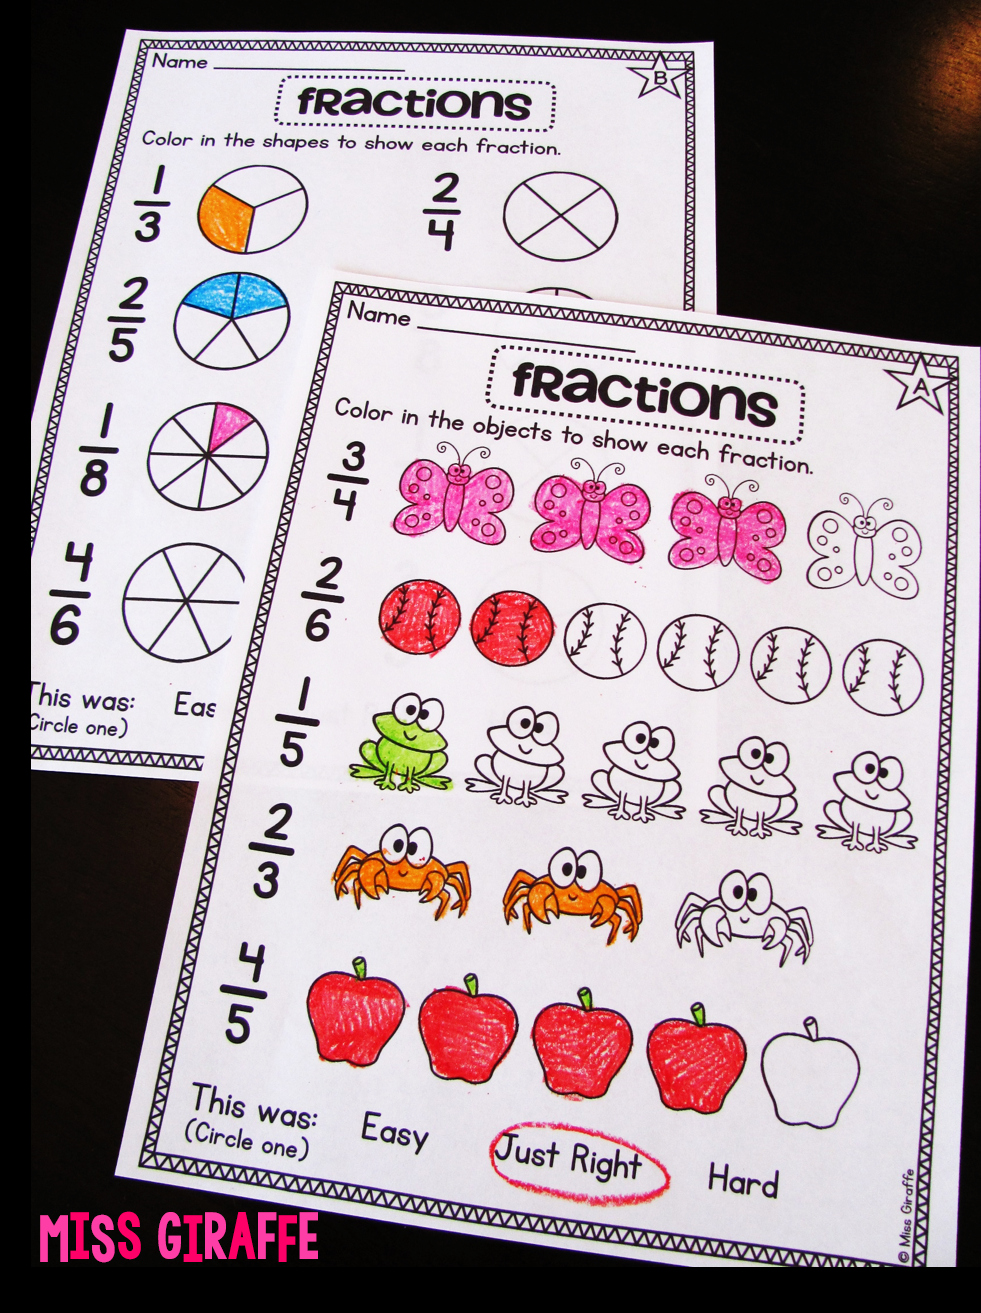 Fractions Worksheets First Grade Unique Miss Giraffe S Class Fractions In First Grade